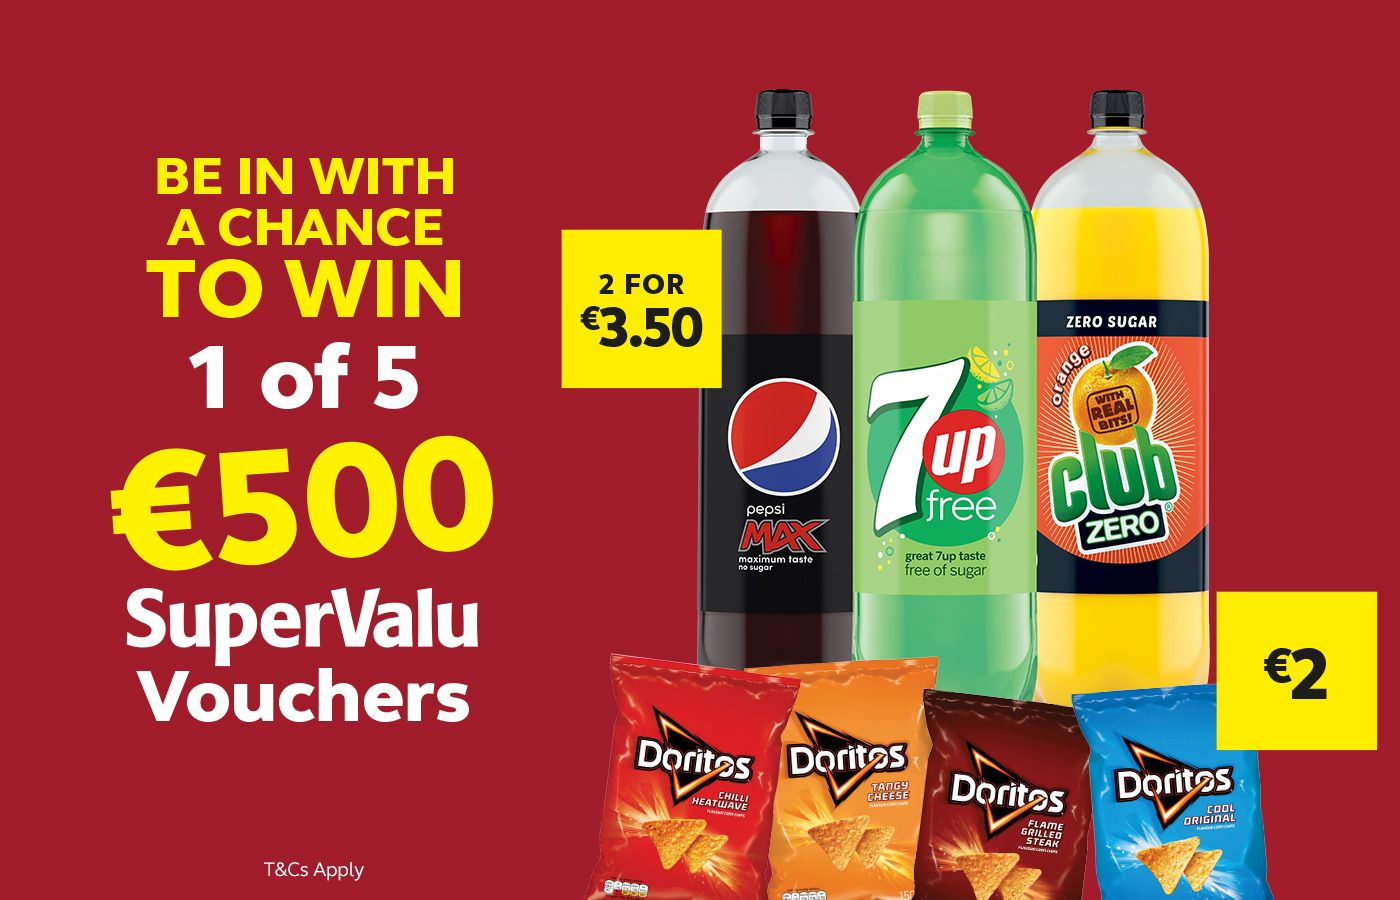 Win 1 of 5 €500 SuperValu Vouchers Competition, How to